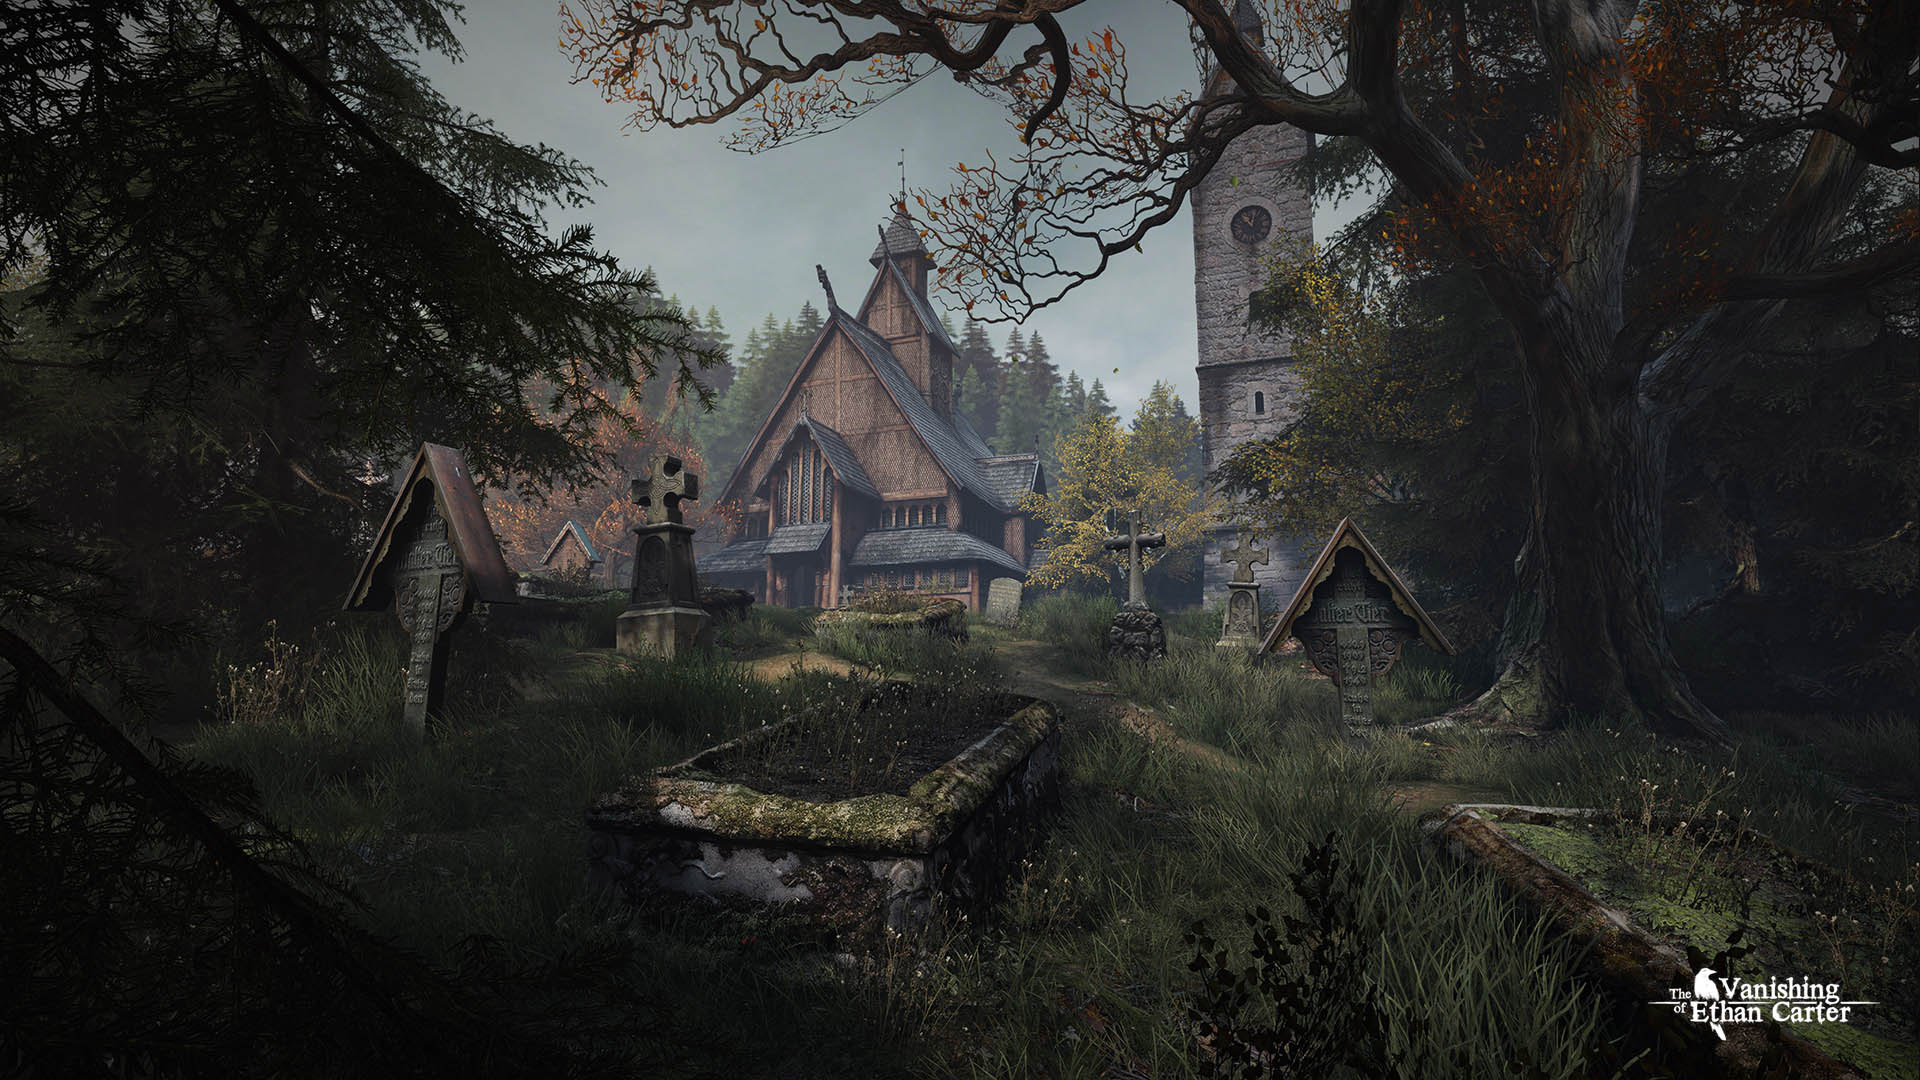 Free The Vanishing of Ethan Carter Wallpaper in 1920x1080